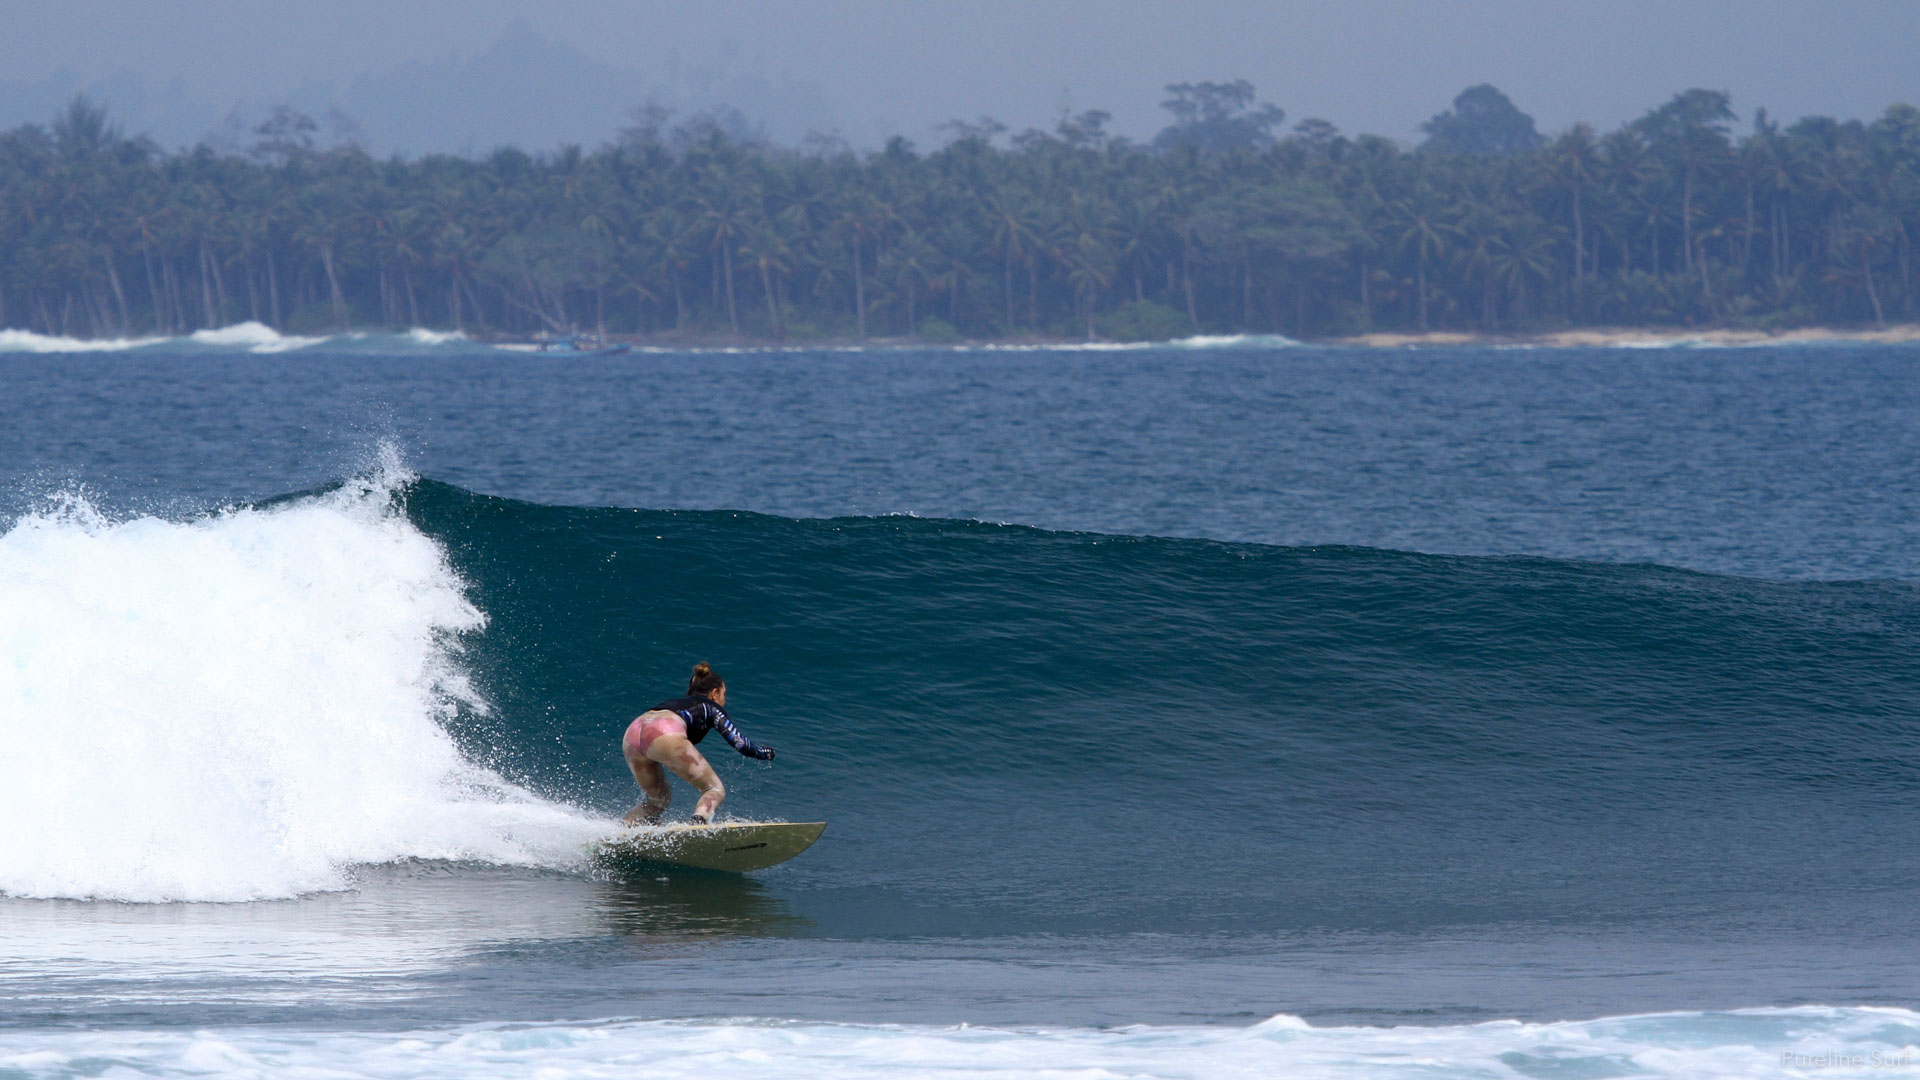 A Pureline Surf Coaching client getting a fun wave at Being Bing's in the Mentawai Islands as part of our worldwide coaching program.